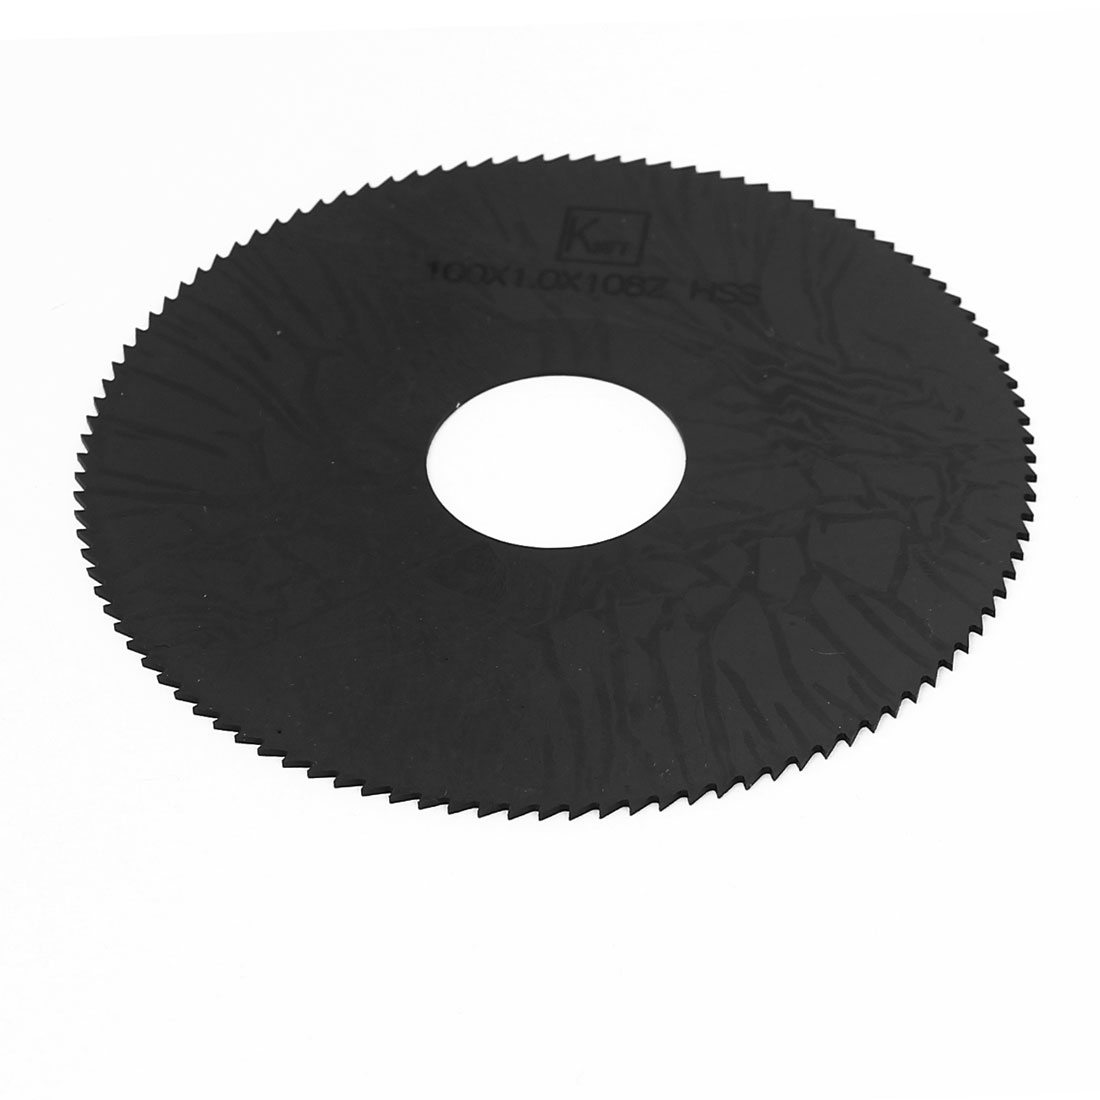 100mm x 1mm x 27mm 108T Teeth HSS Slitting Saw Cutter Black